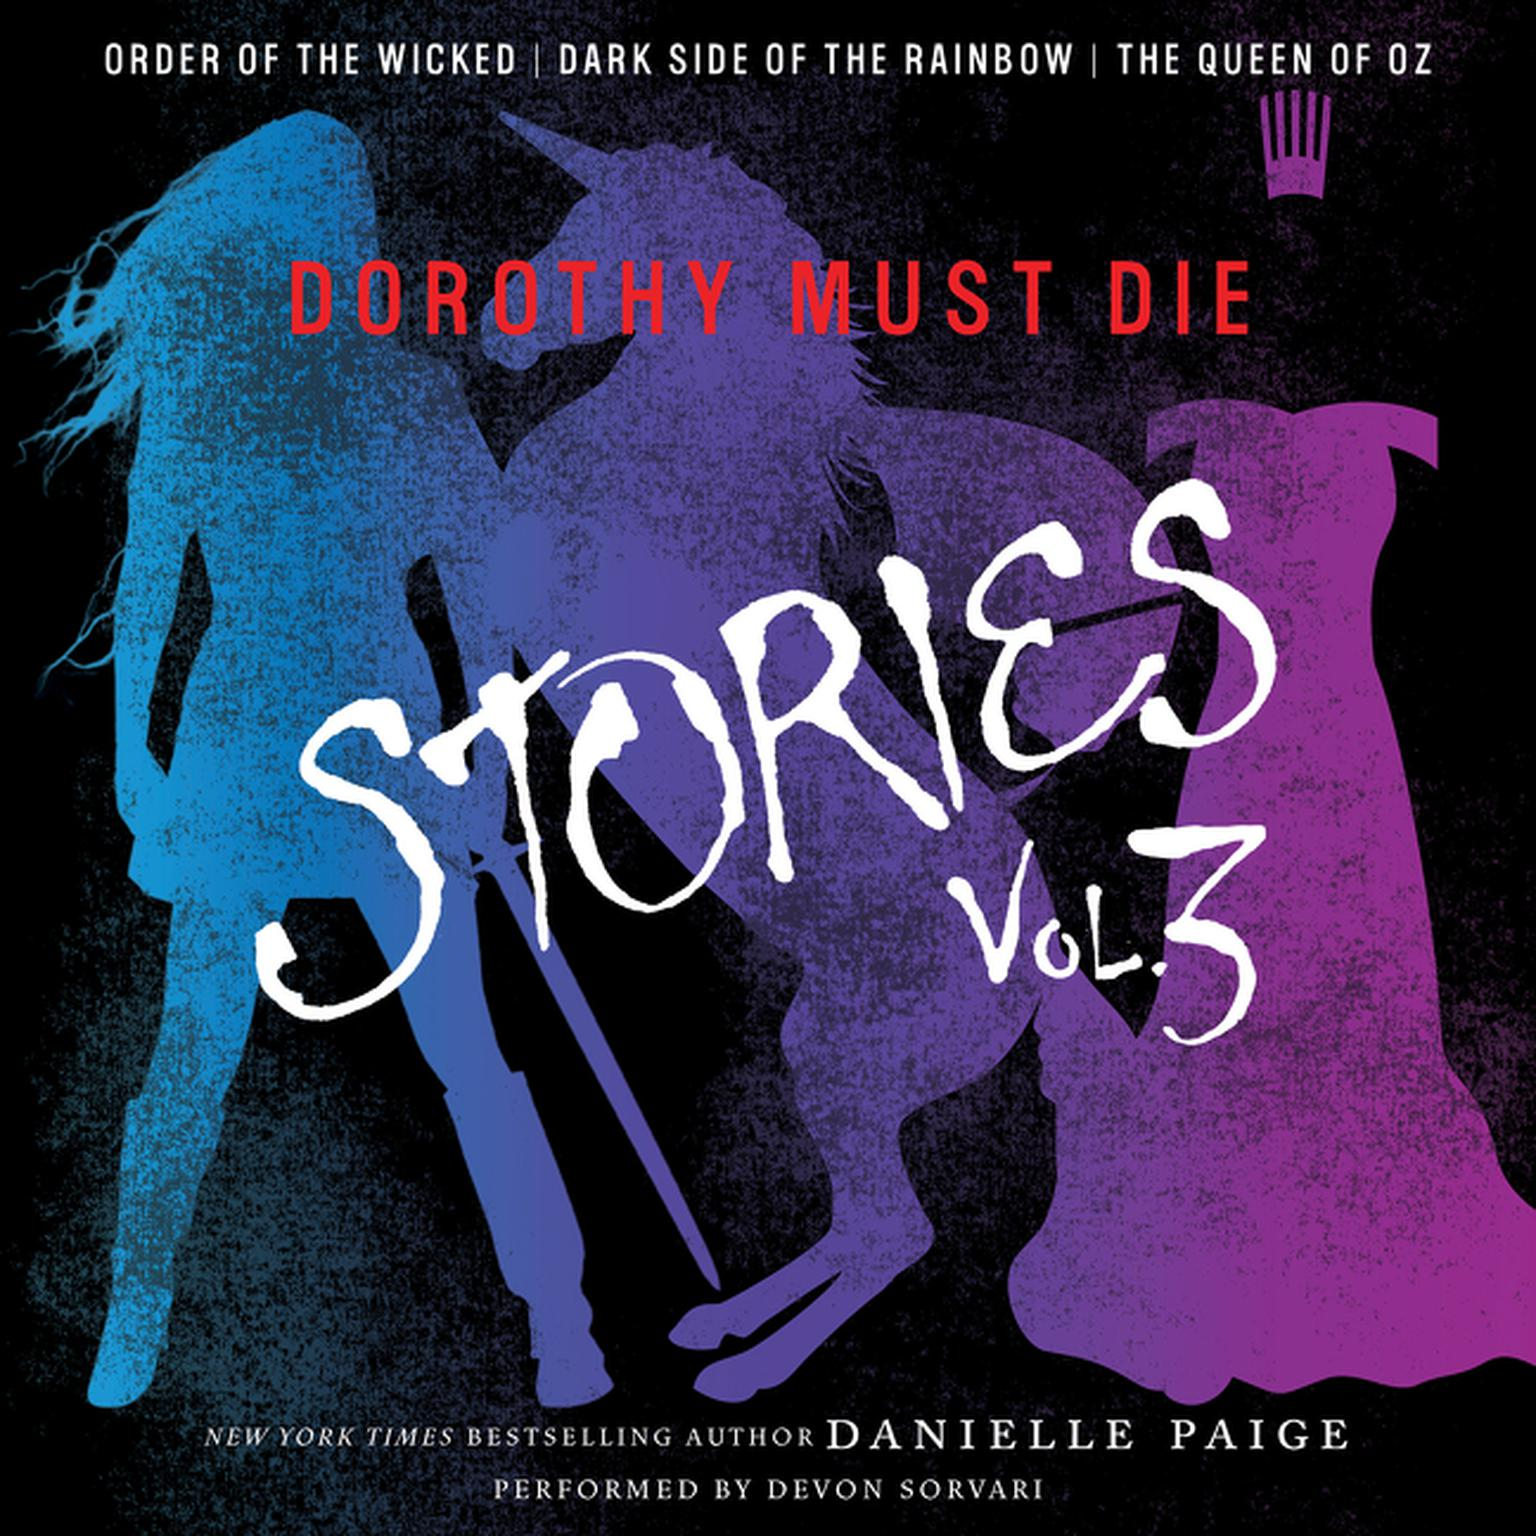 Dorothy Must Die Stories Volume 3: Order of the Wicked, Dark Side of the Rainbow, The Queen of Oz Audiobook, by Danielle Paige